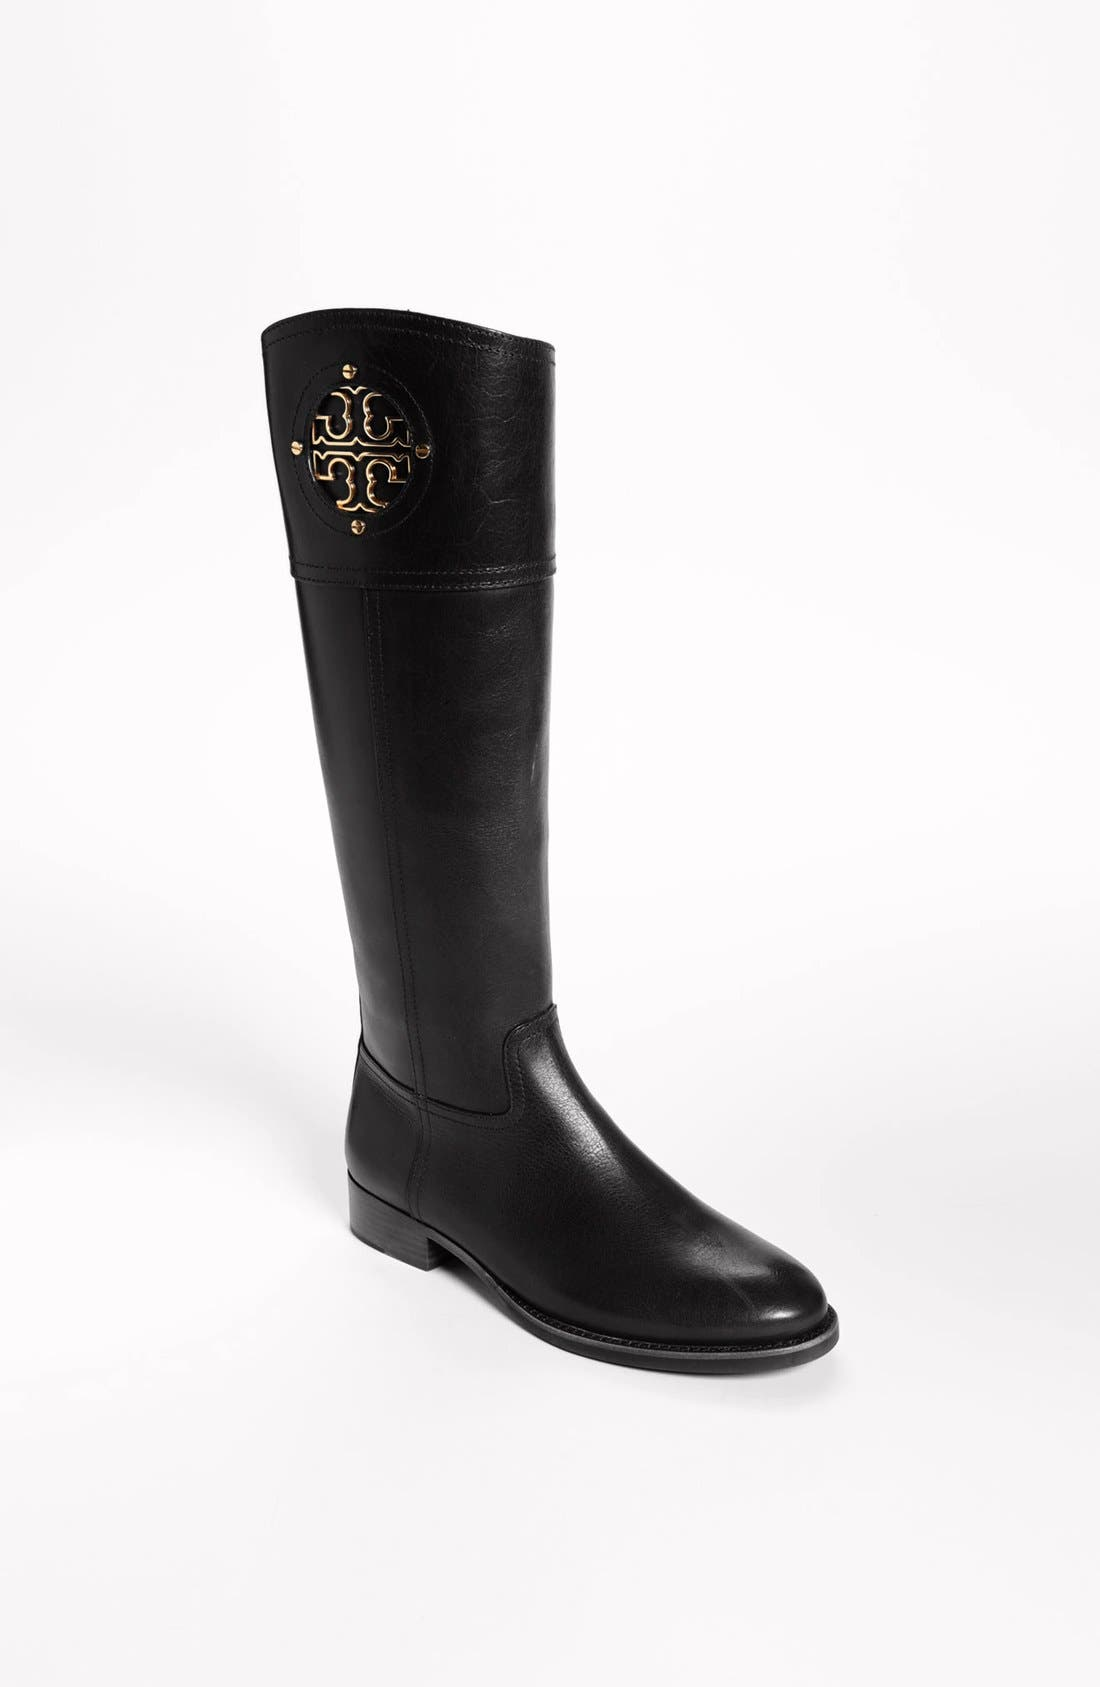 Alternate Image 1 Selected - Tory Burch 'Kiernan' Boot